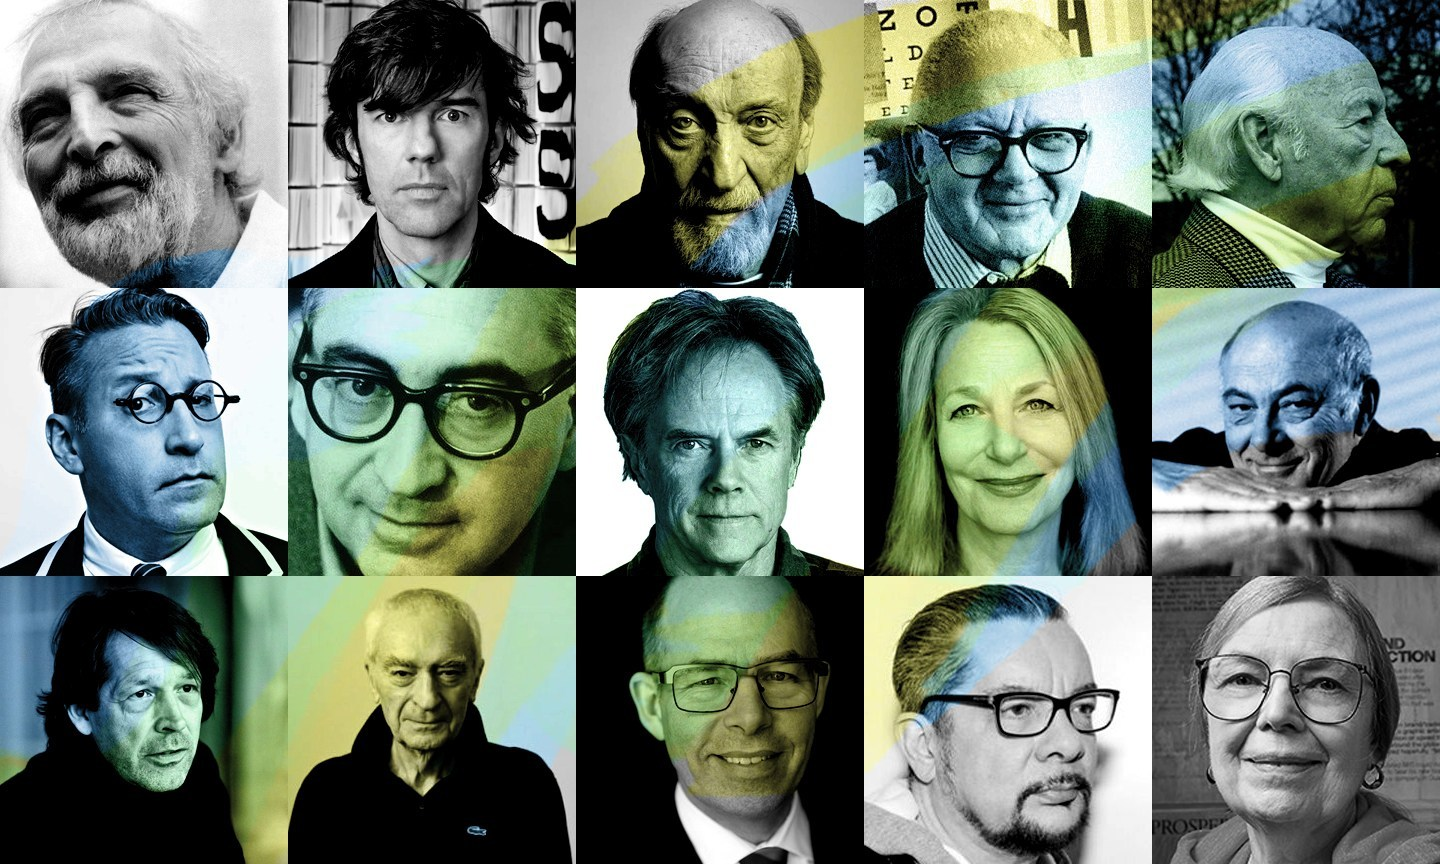 THE-MOST-FAMOUS-GRAPHIC-DESIGNERS